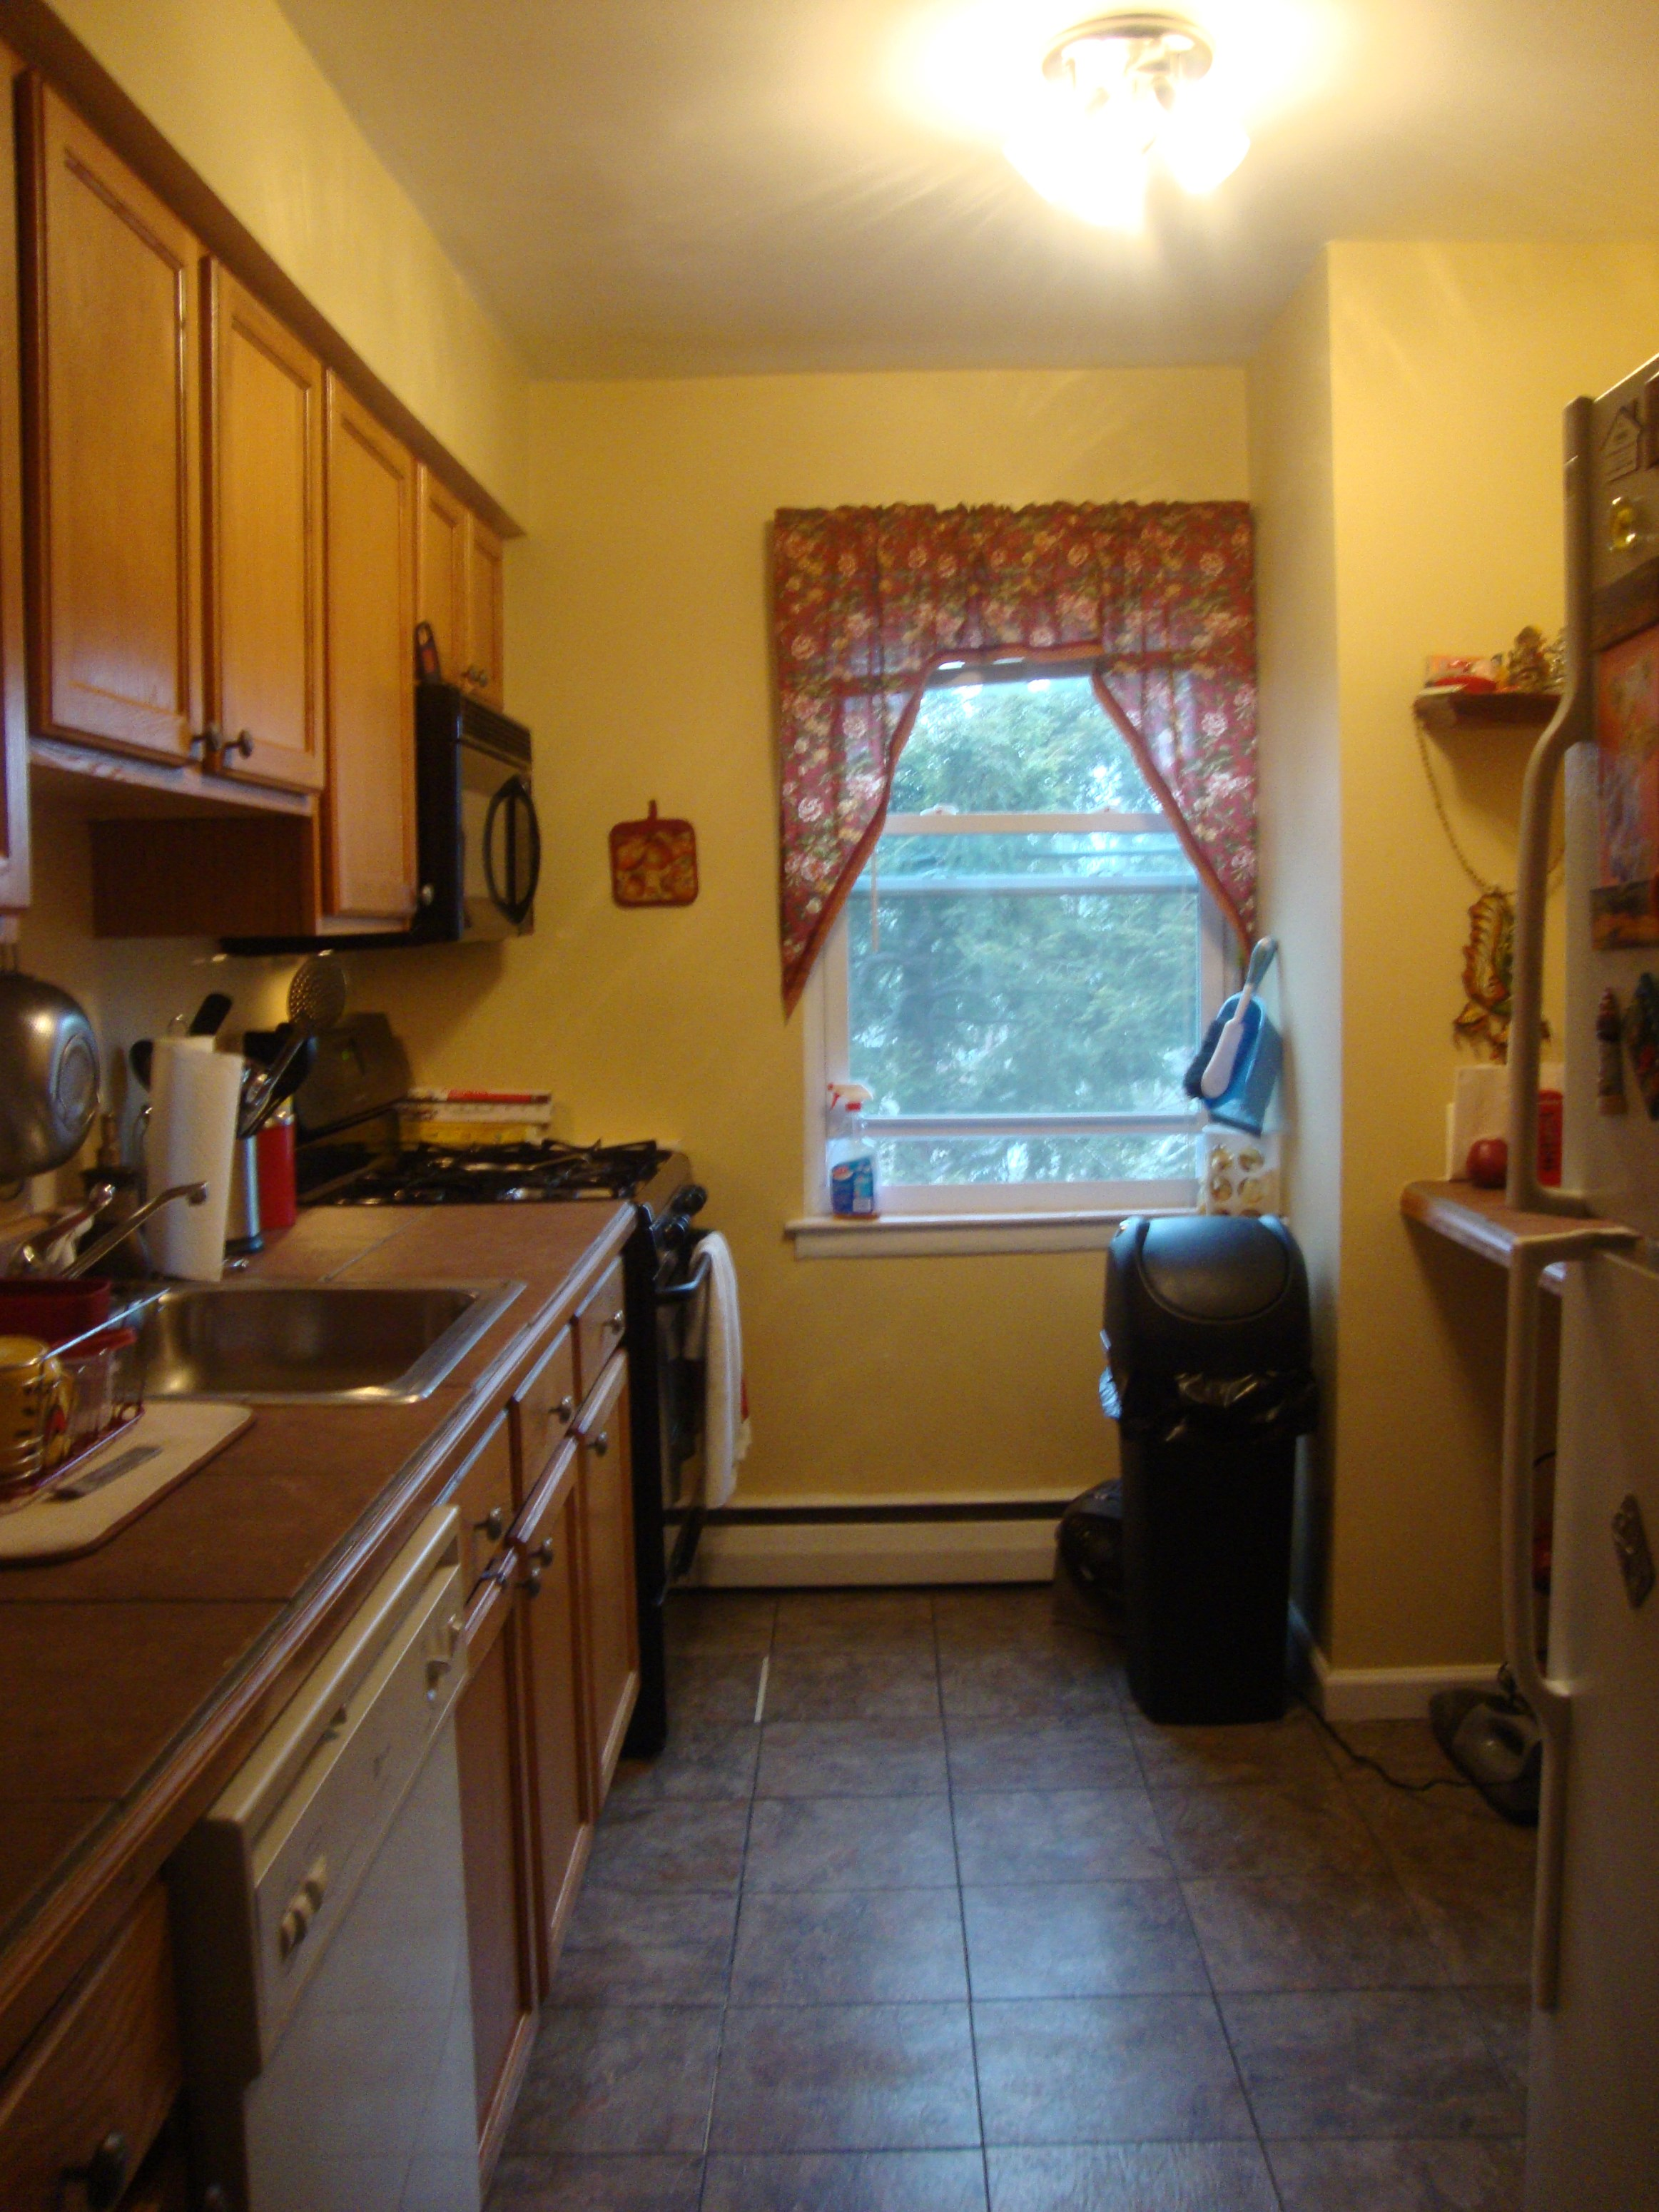 2 Bedroom House For Rent In Edison Nj Two Bedroom Homes For Rental Sulekha Rentals